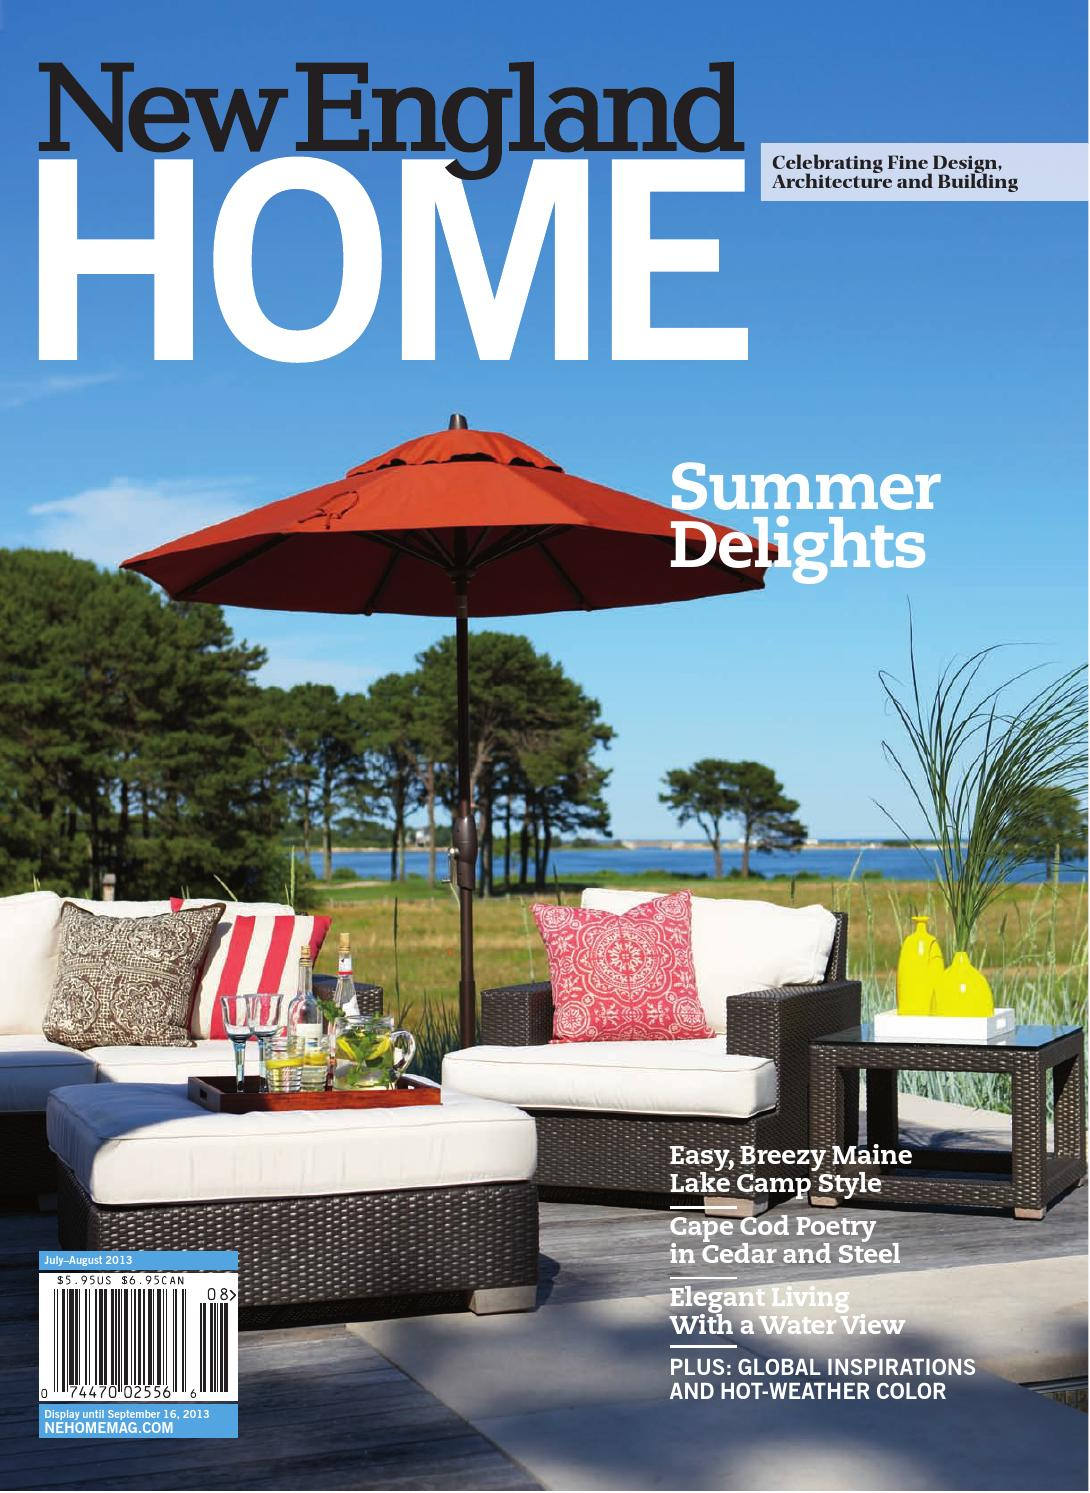 New England Home July August 2013 by Network Communications Inc. - issuu